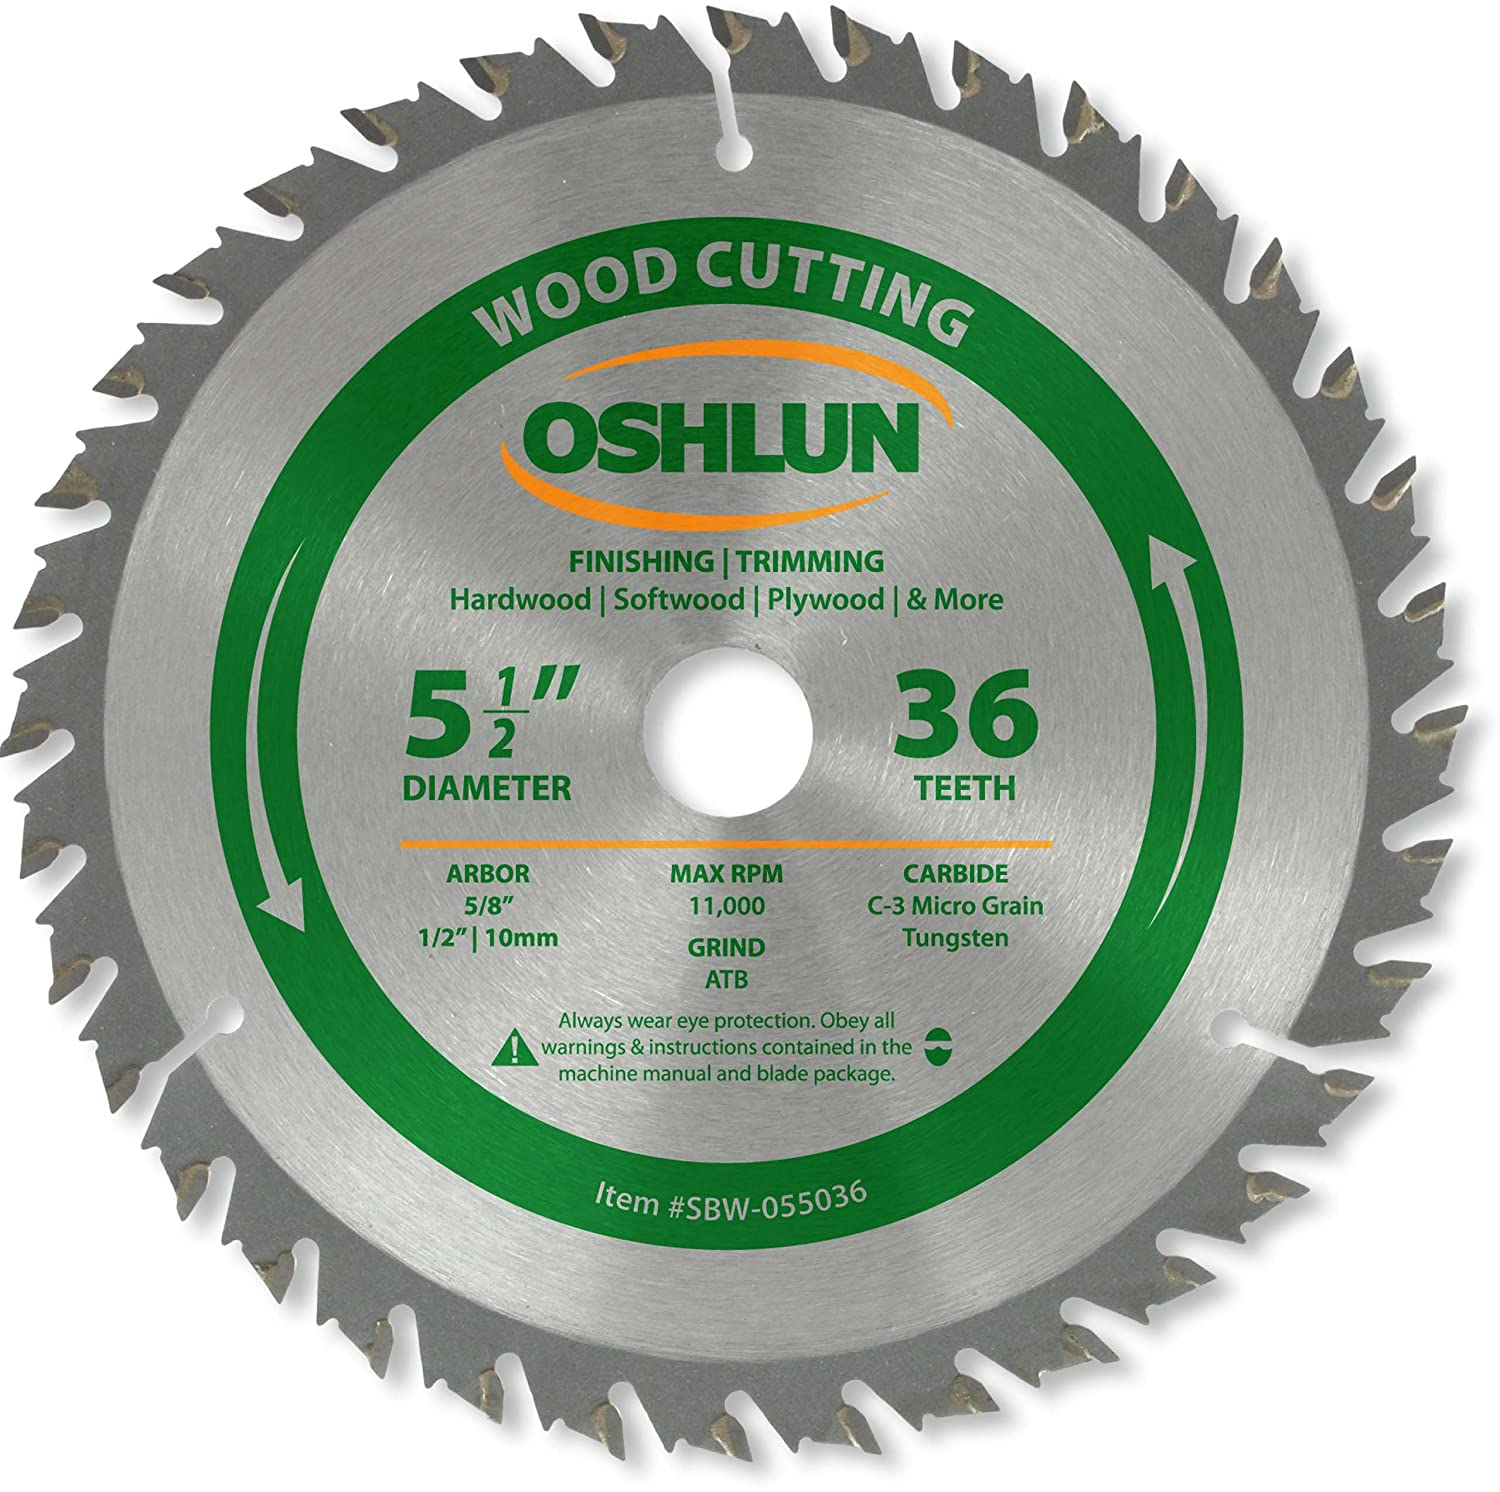 Oshlun sbw 055018 5 12 inch 18 tooth atb fast cutting and trimming oshlun sbw 055018 5 12 inch 18 tooth atb fast cutting and trimming saw blade with 58 inch arbor 12 inch and 10mm bushings circular saw blades keyboard keysfo